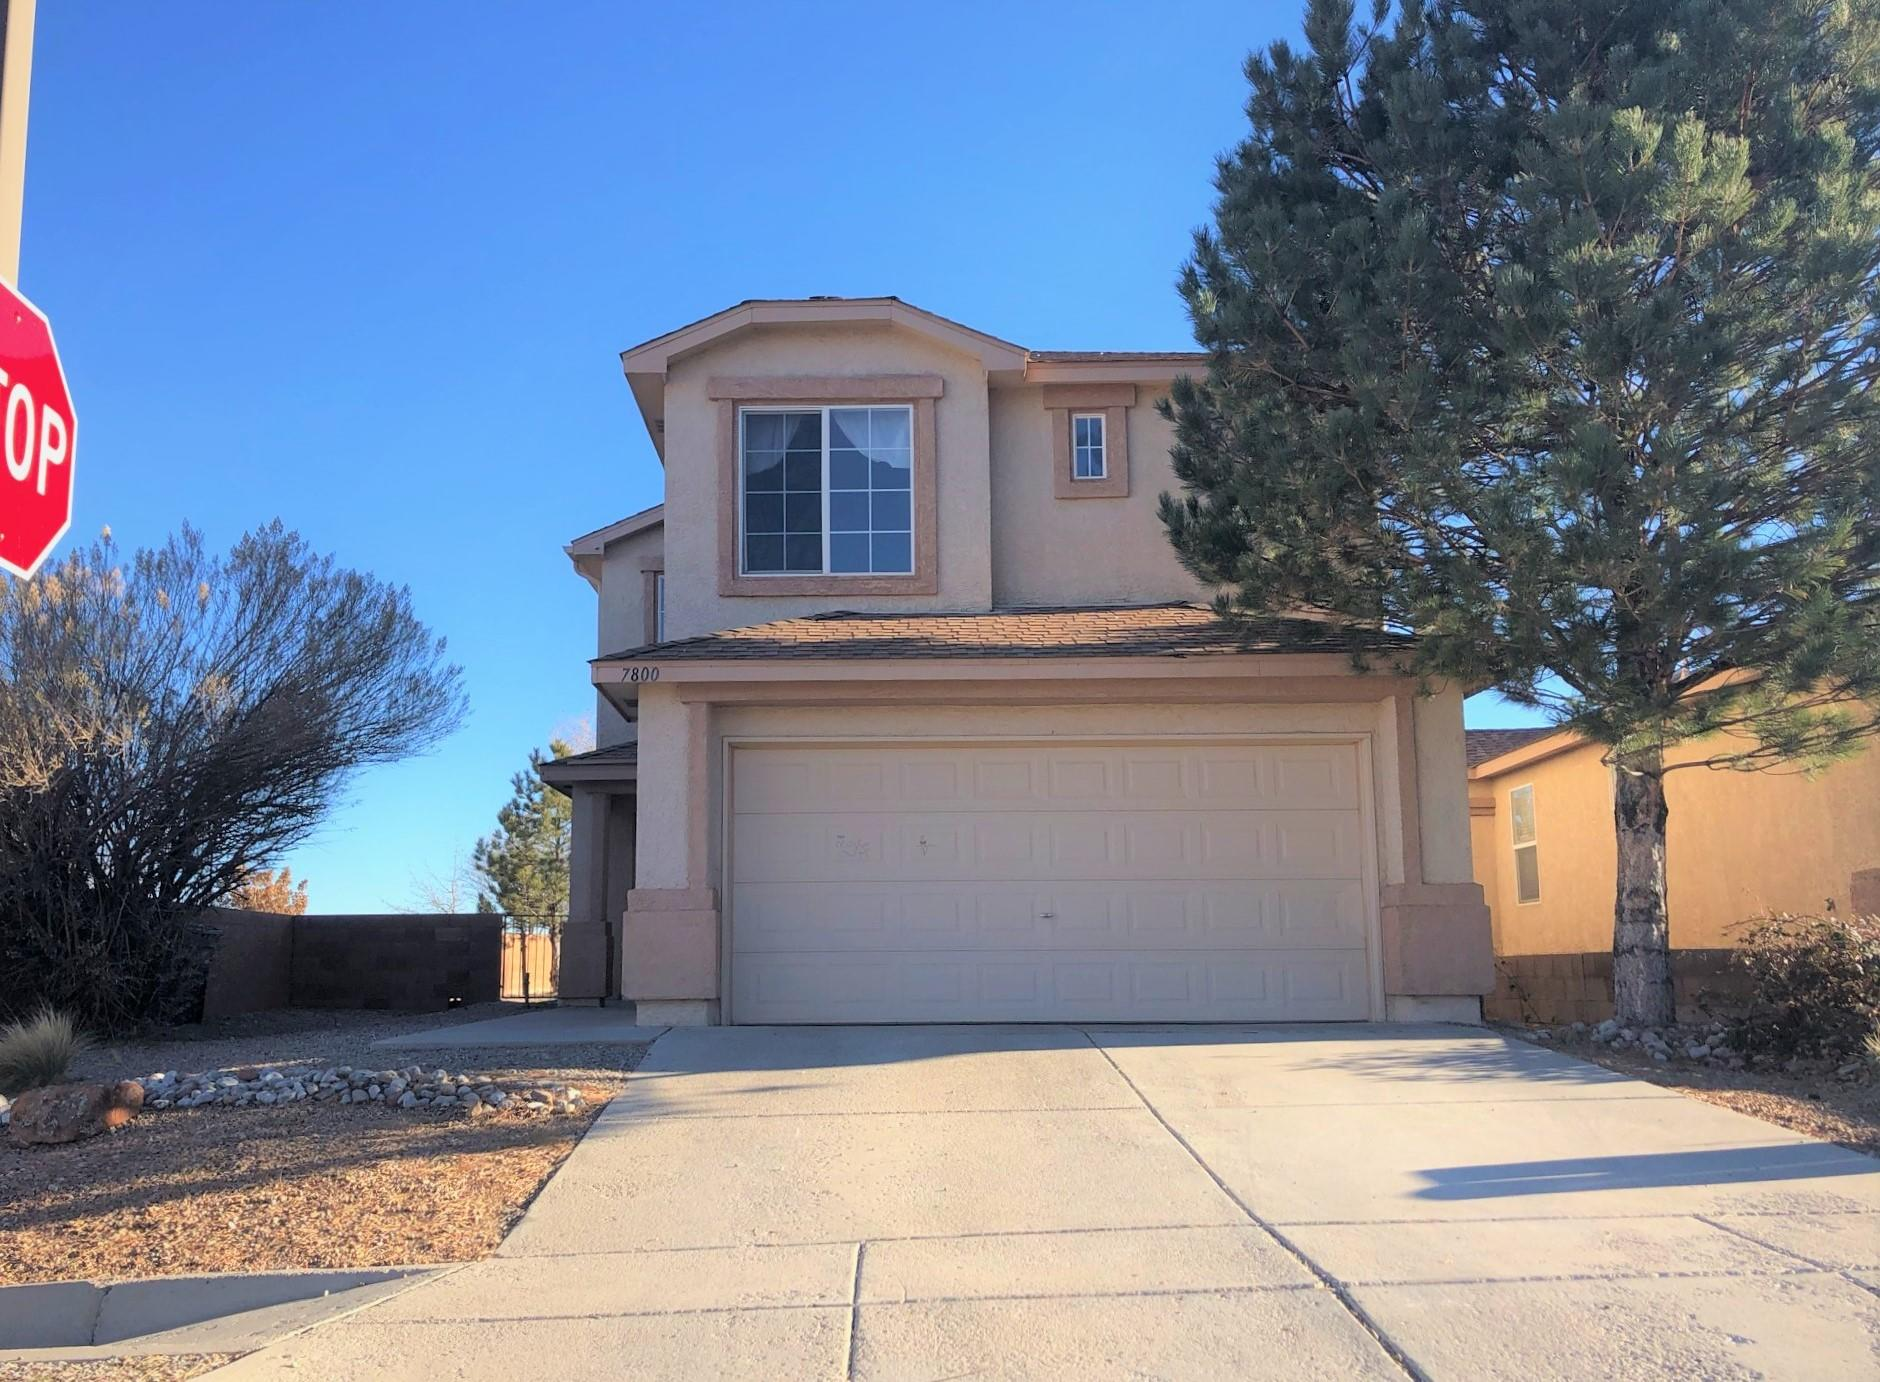 With instant cash flow this investment just makes sense! Just leased for $1500/month through 2/28/22.  Gas fireplace, ceiling fan in living room, landscaped backyard, corner property. Property will only be shown upon accepted offer and at least 24 hour notice to tenant.